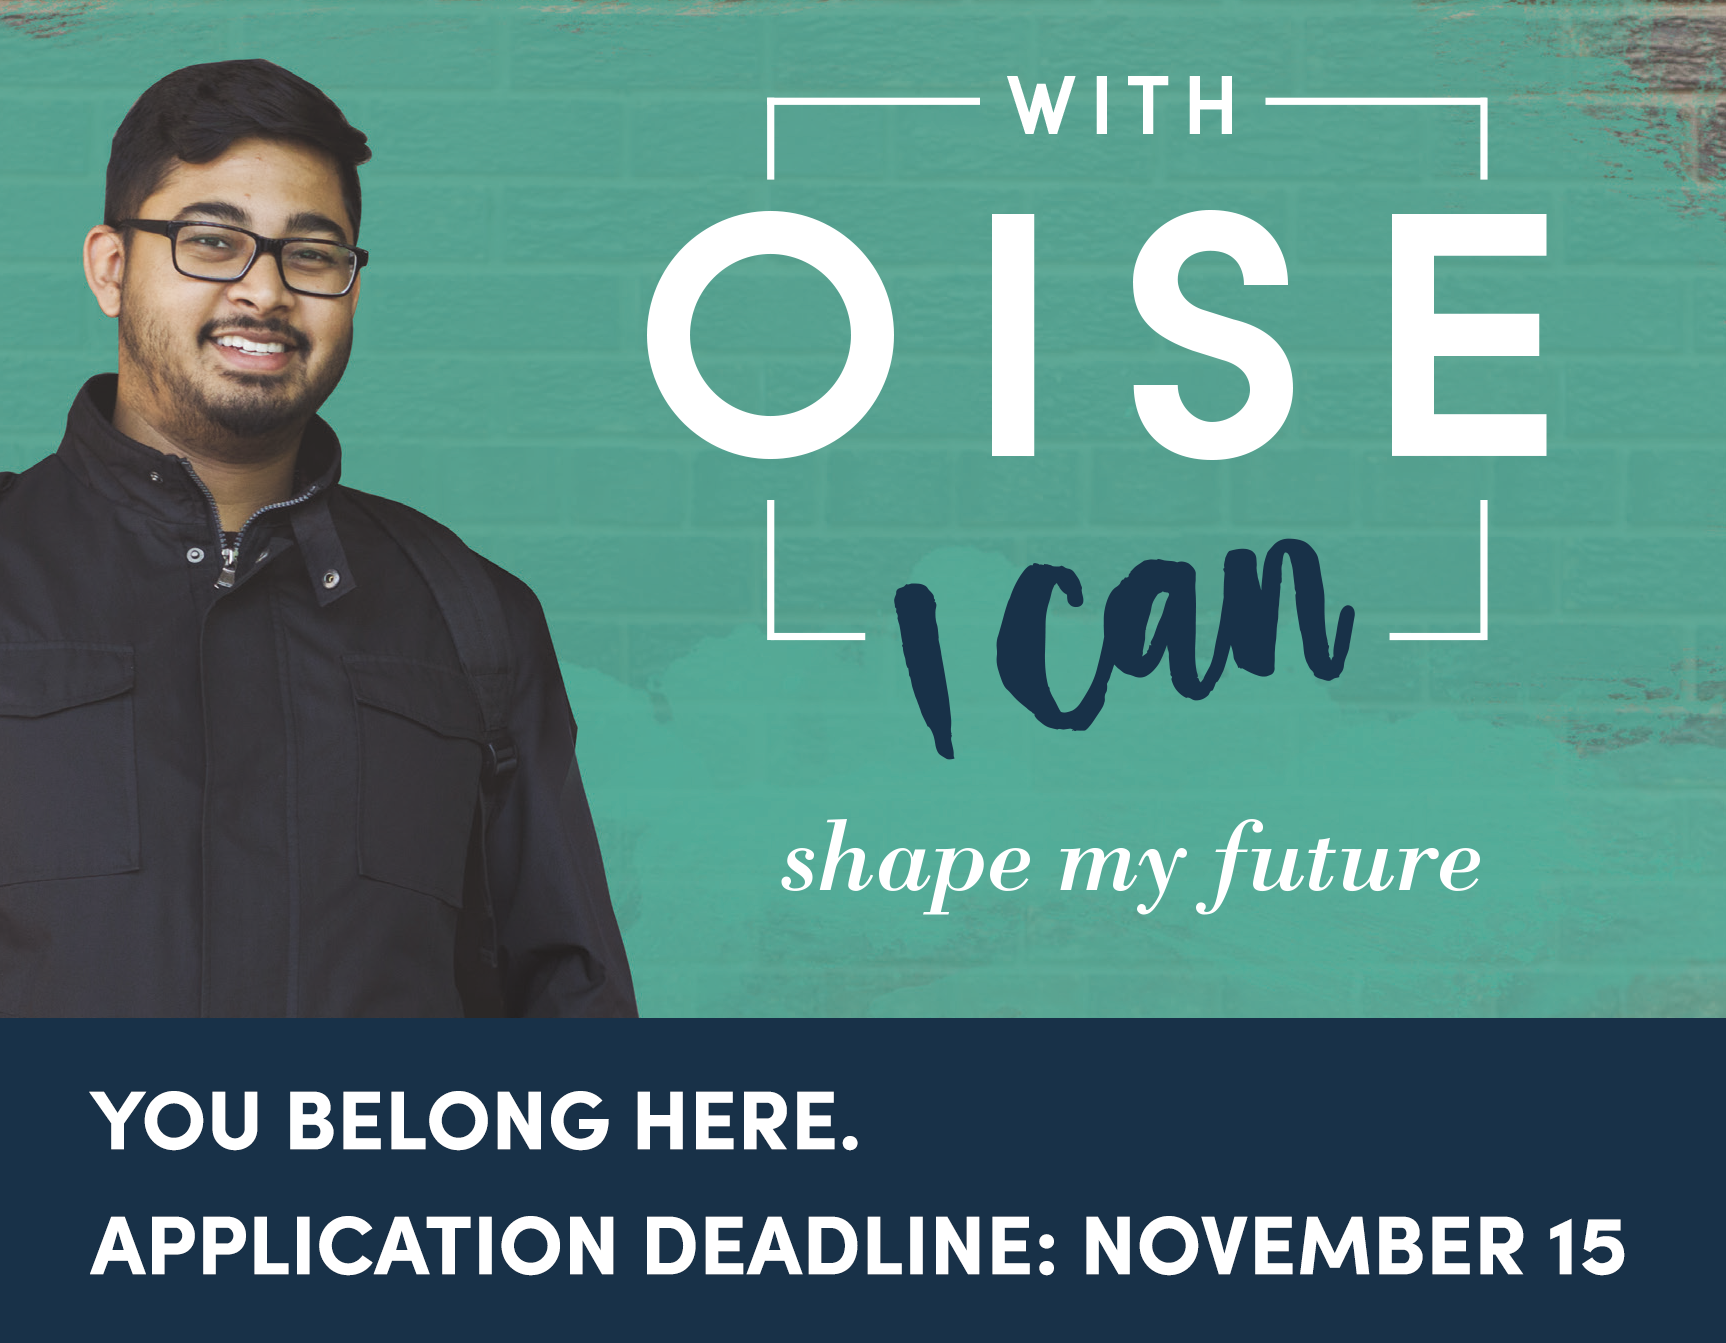 Apply for graduate studies at the Ontario Institute for Studies in Education. The application deadline for Fall 2018 is November 15, 2017. Learn more.